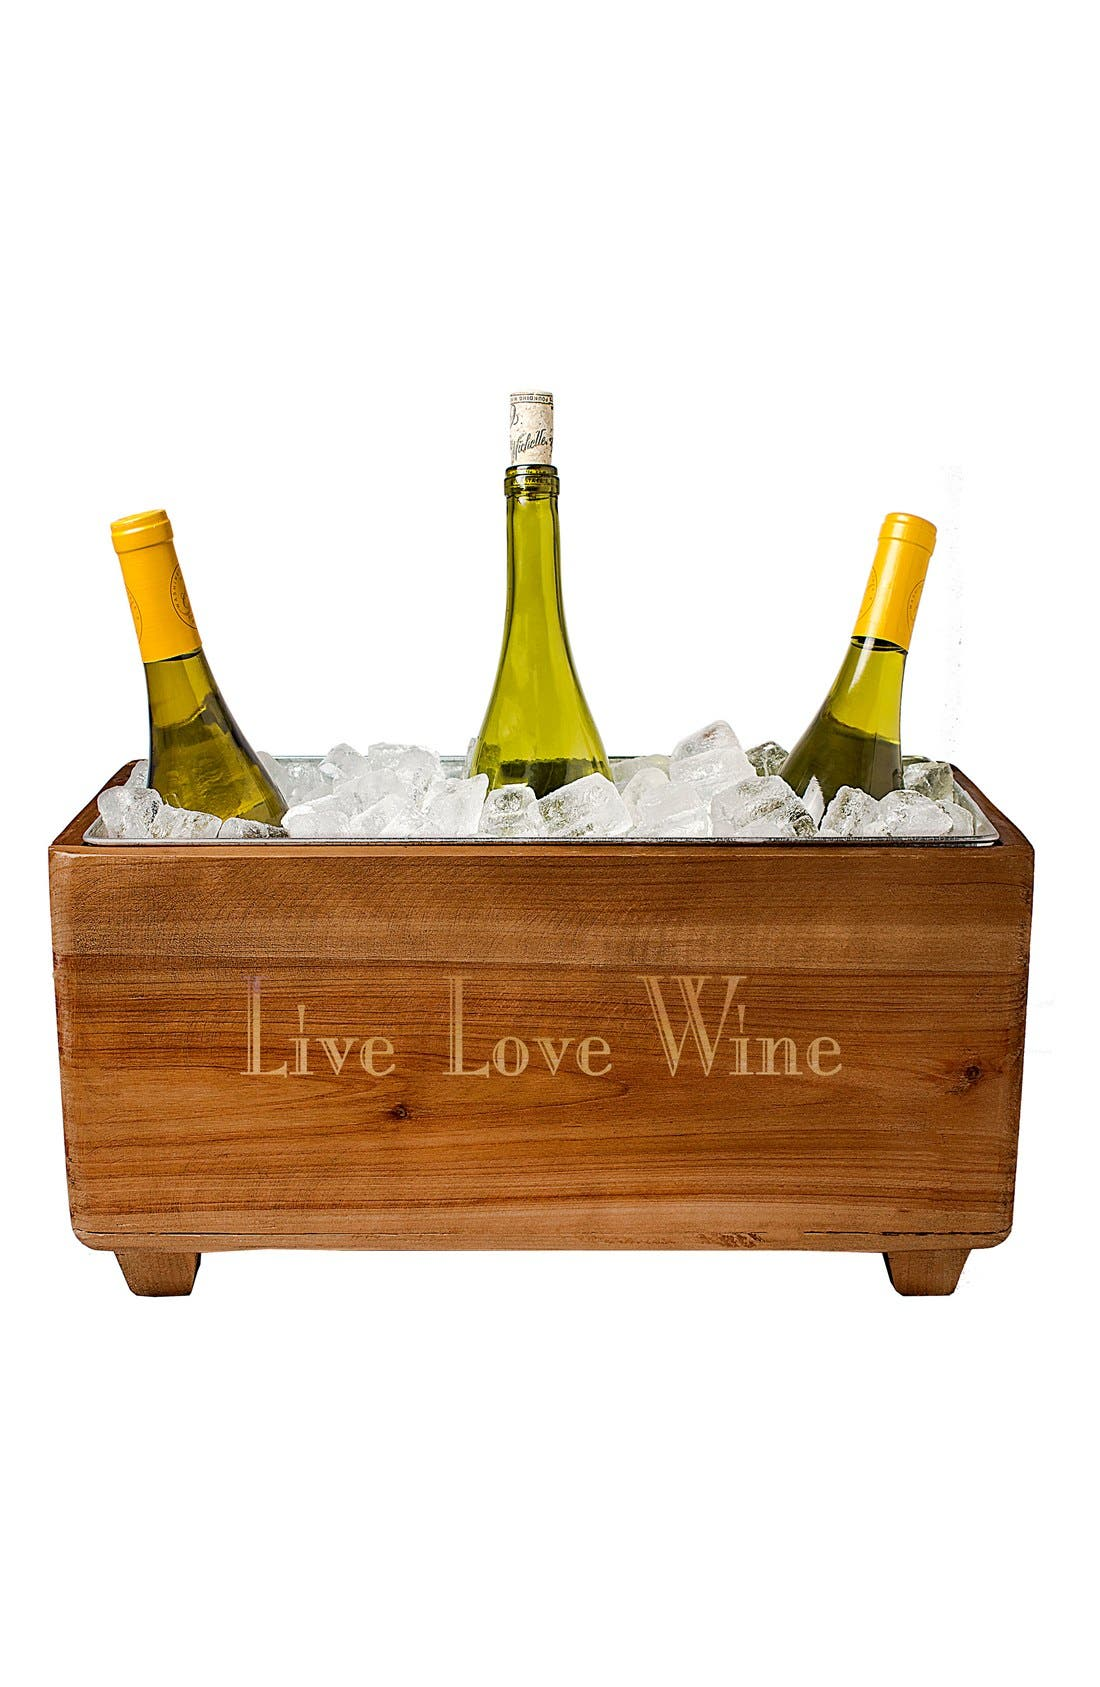 Main Image - Cathy's Concepts Live Love Wine Wooden Wine Trough